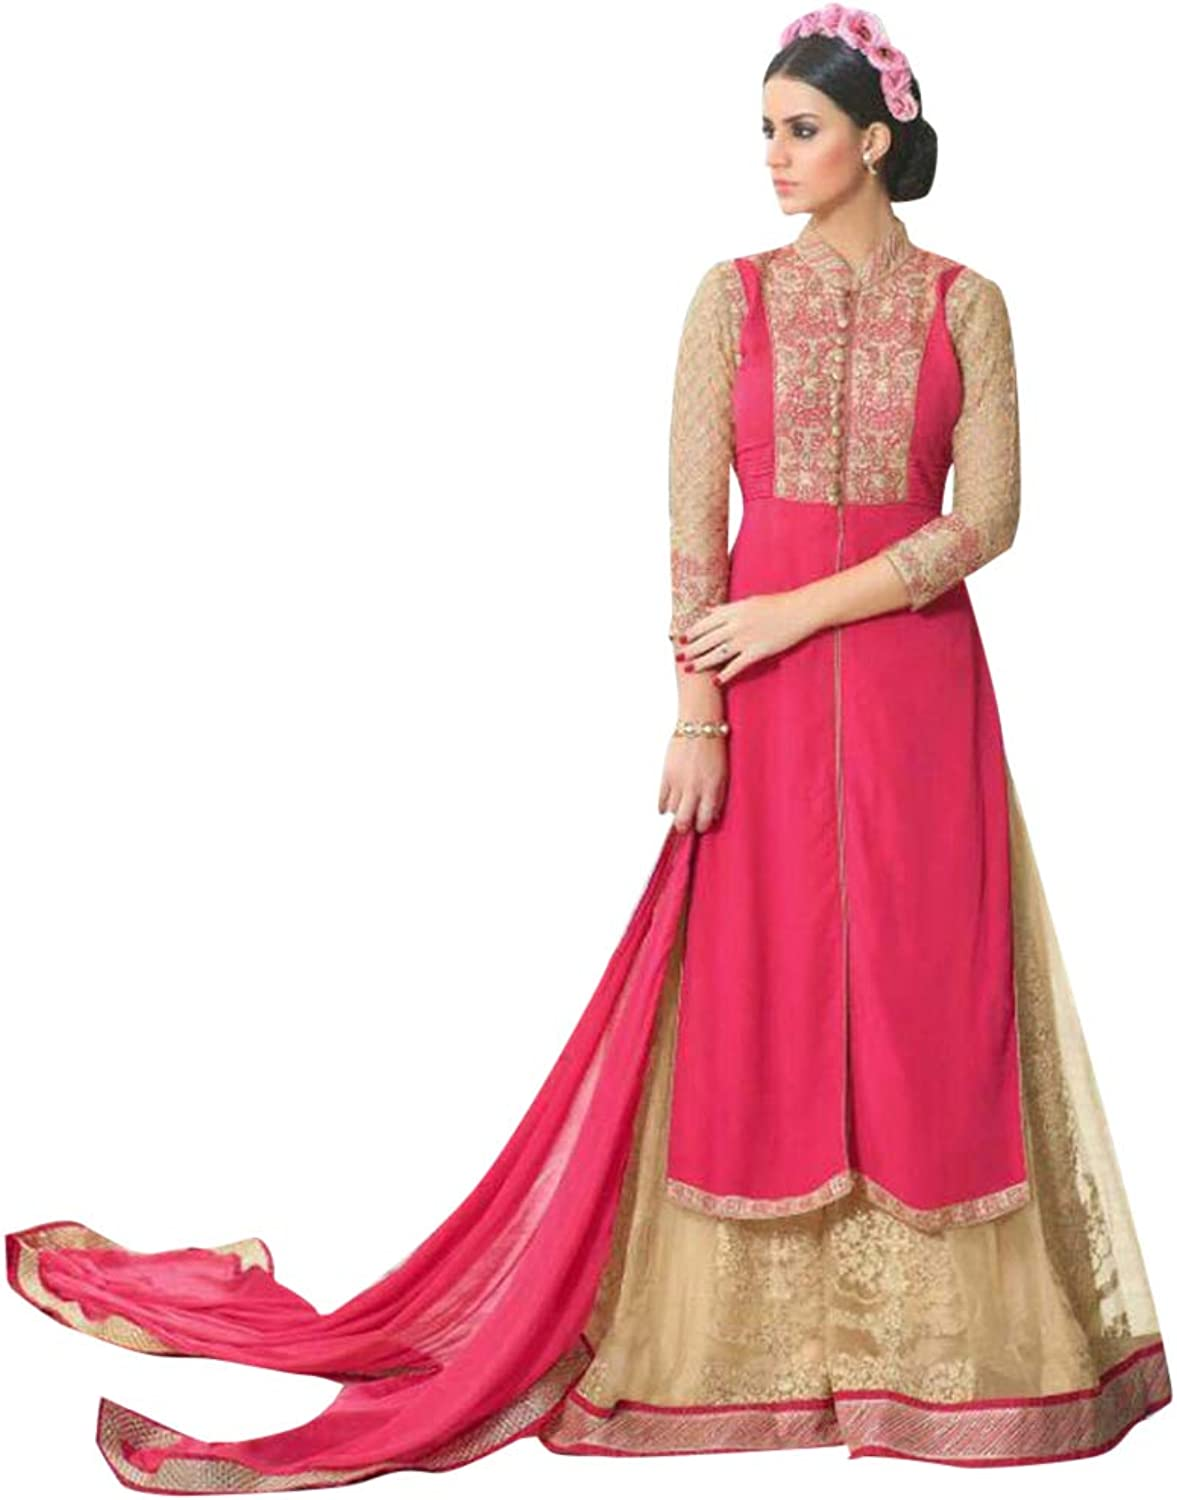 Designer Front Cut Salwar Kameez Suit Palazzo Style Indian Ethnic Party Wear Collection 7356